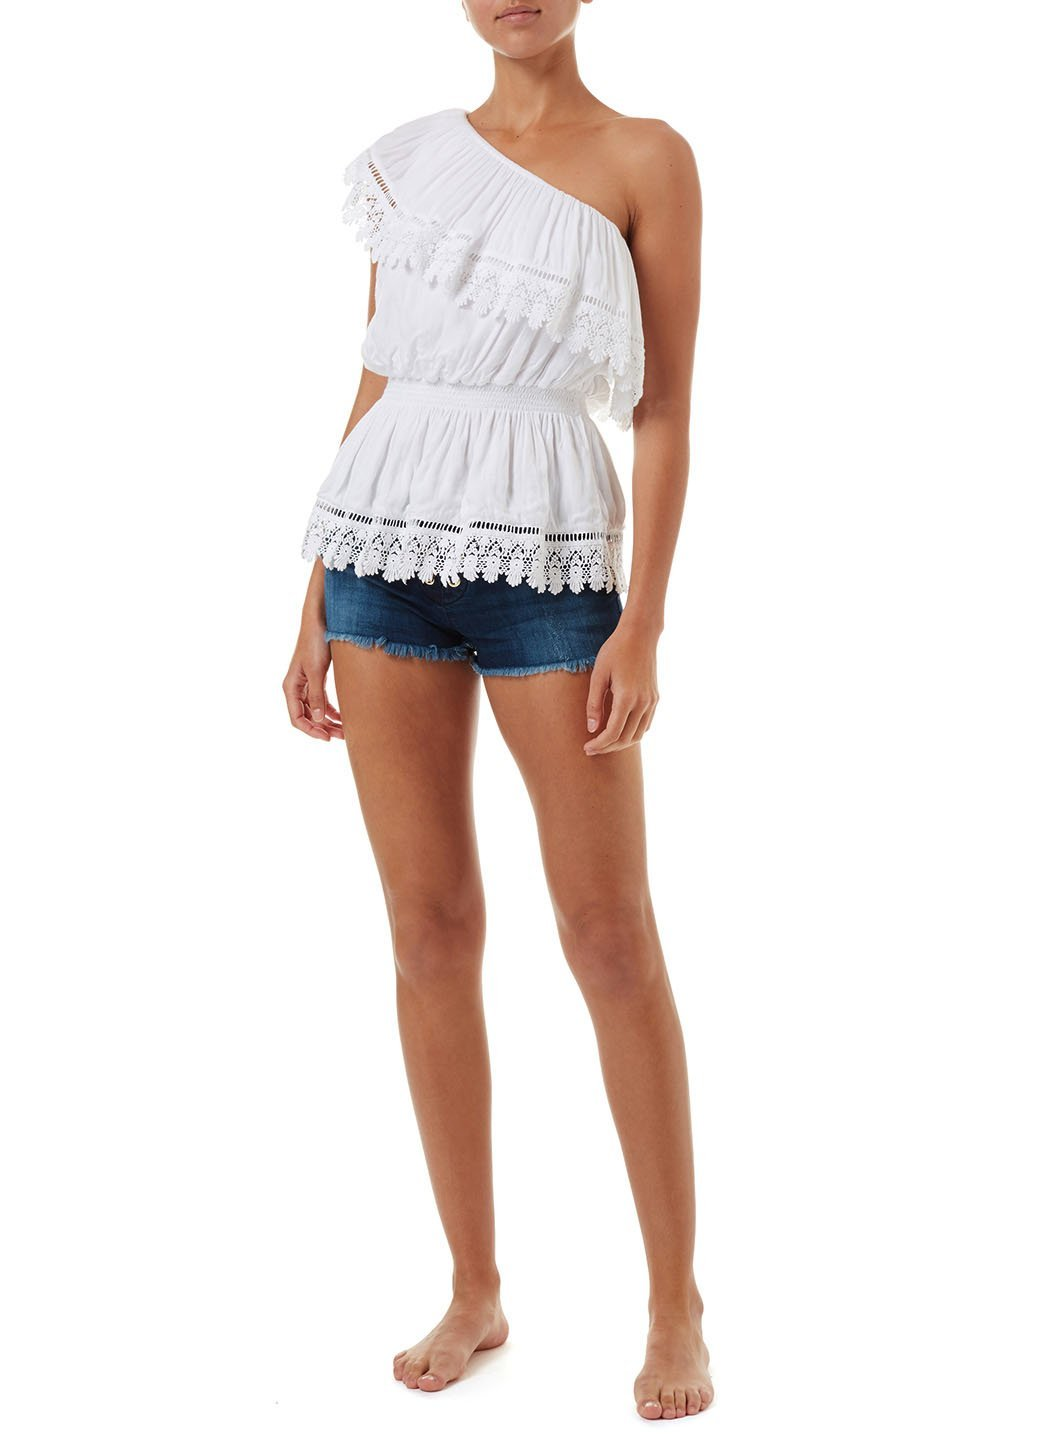 joanna white oneshoulder embroidered frill top 2019 F